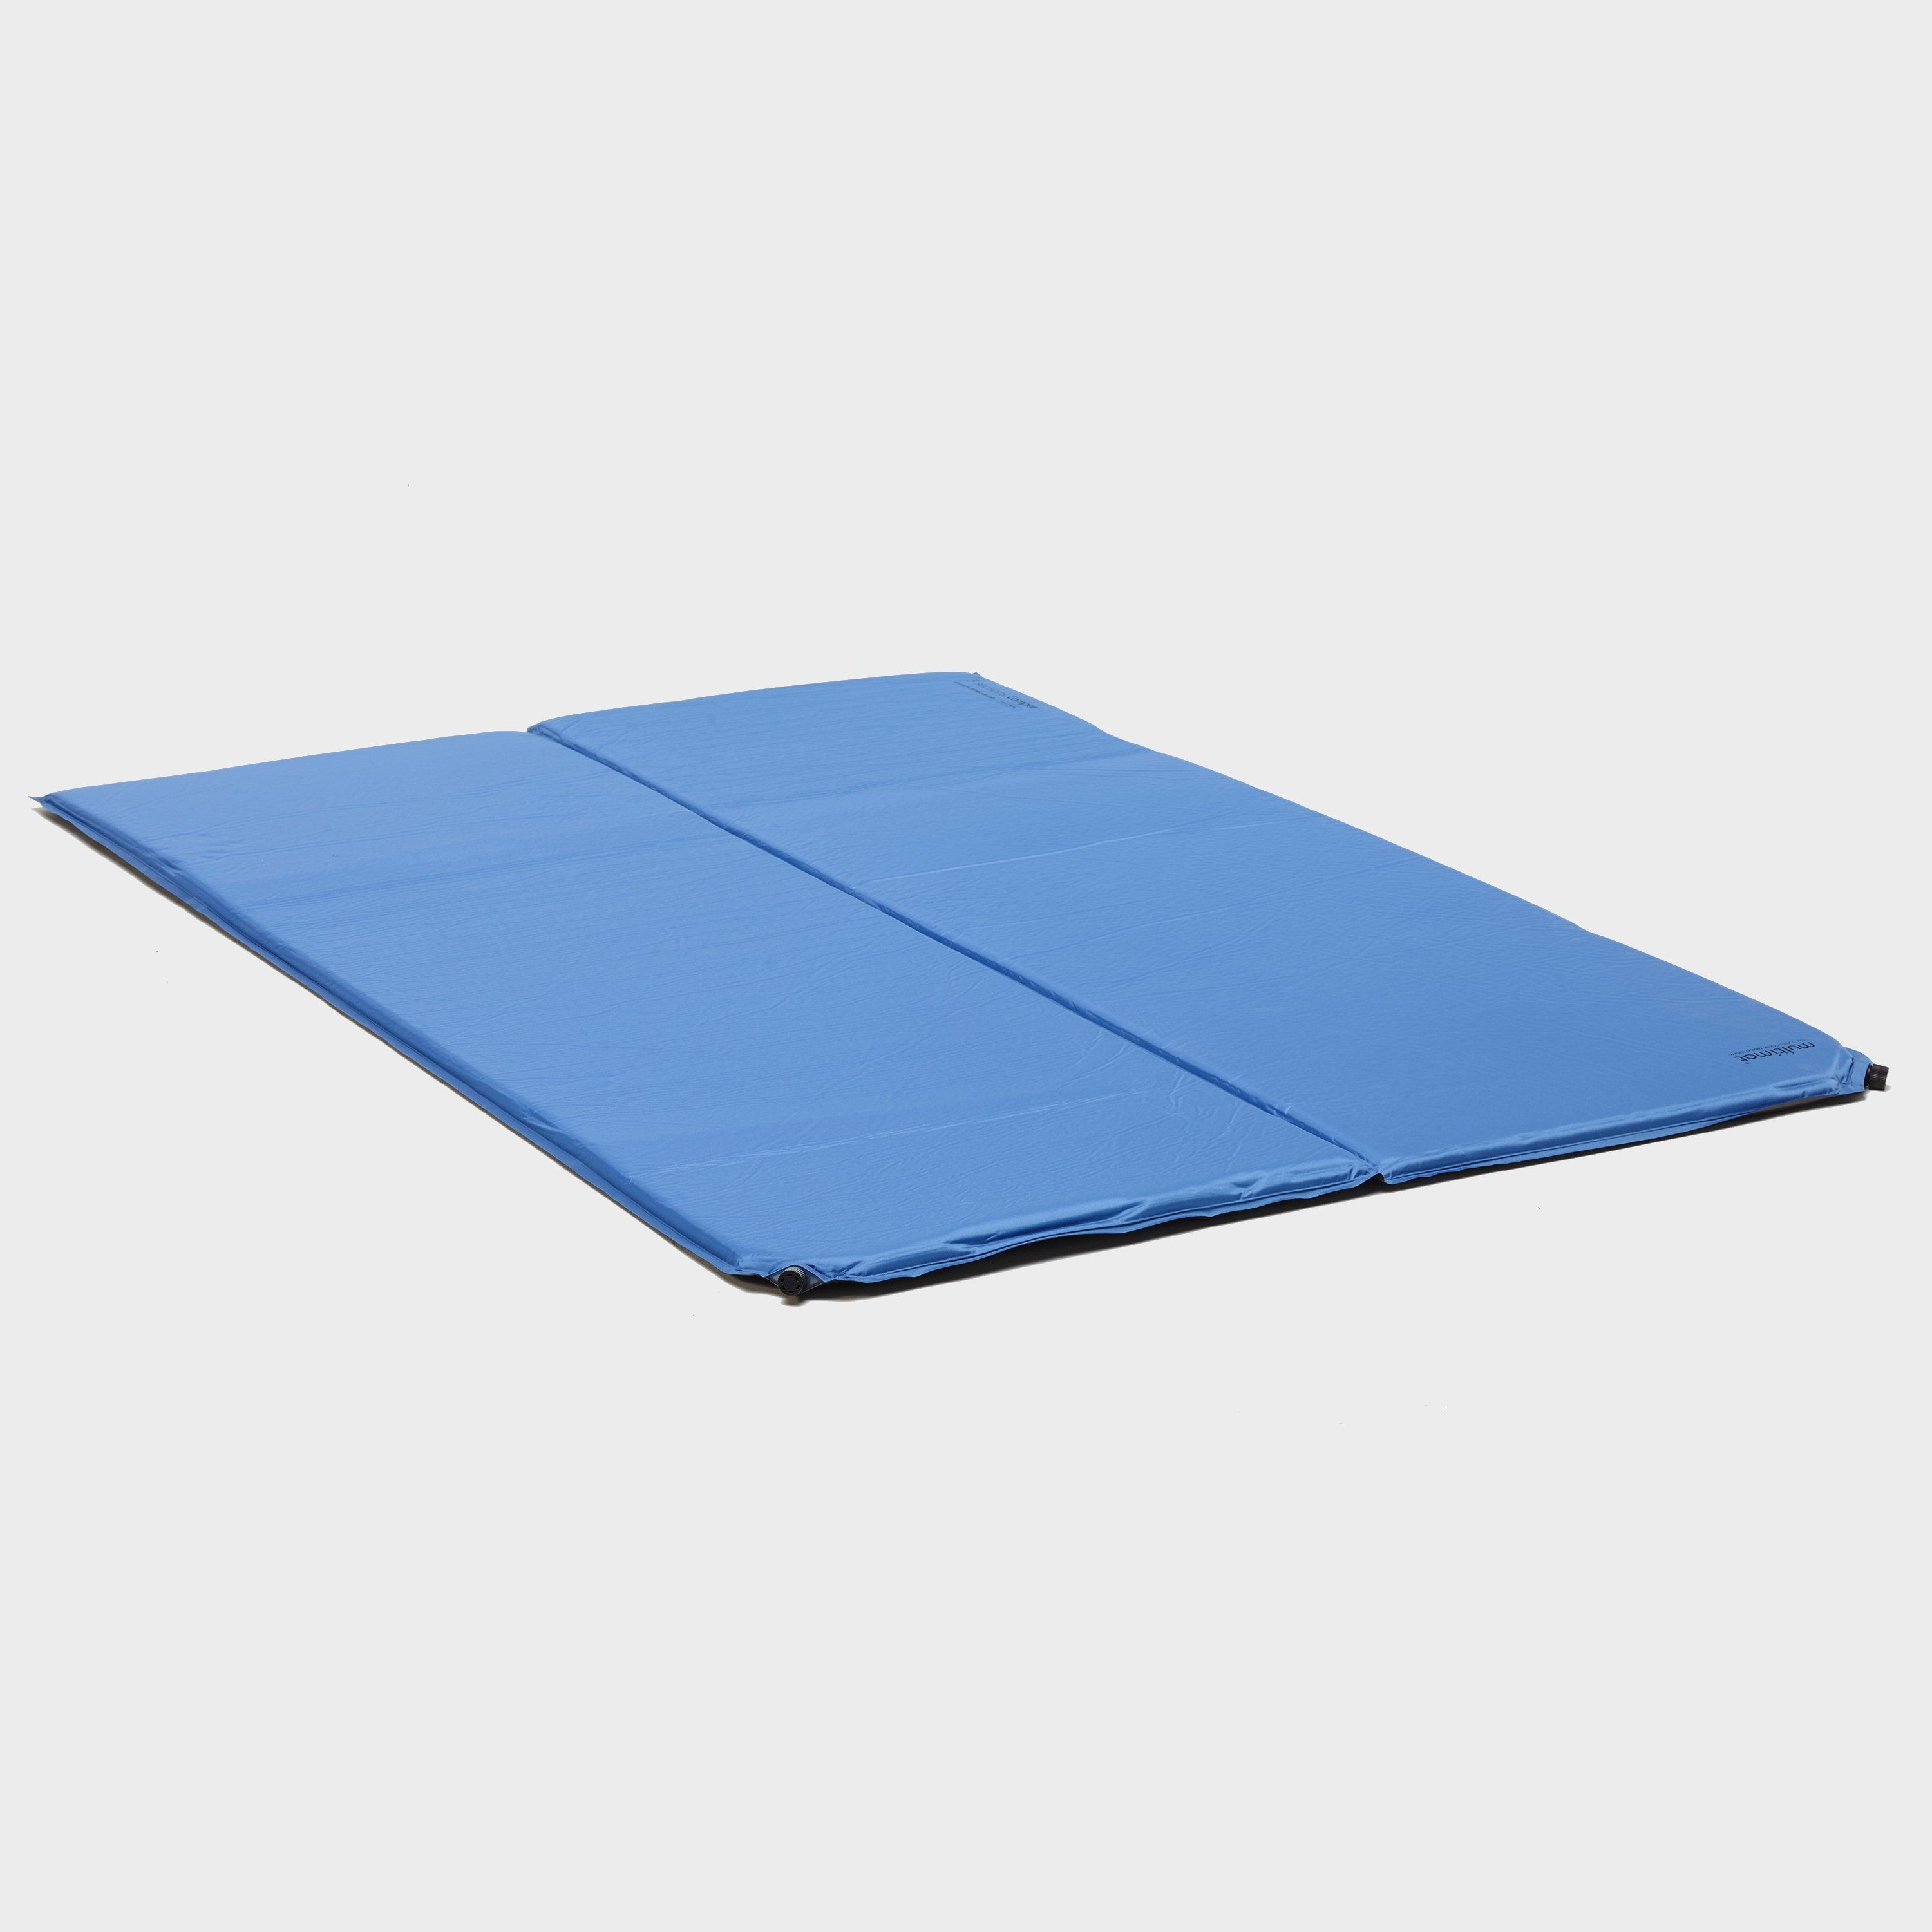 MULTIMAT Camper 25 Double Self-inflating Mat